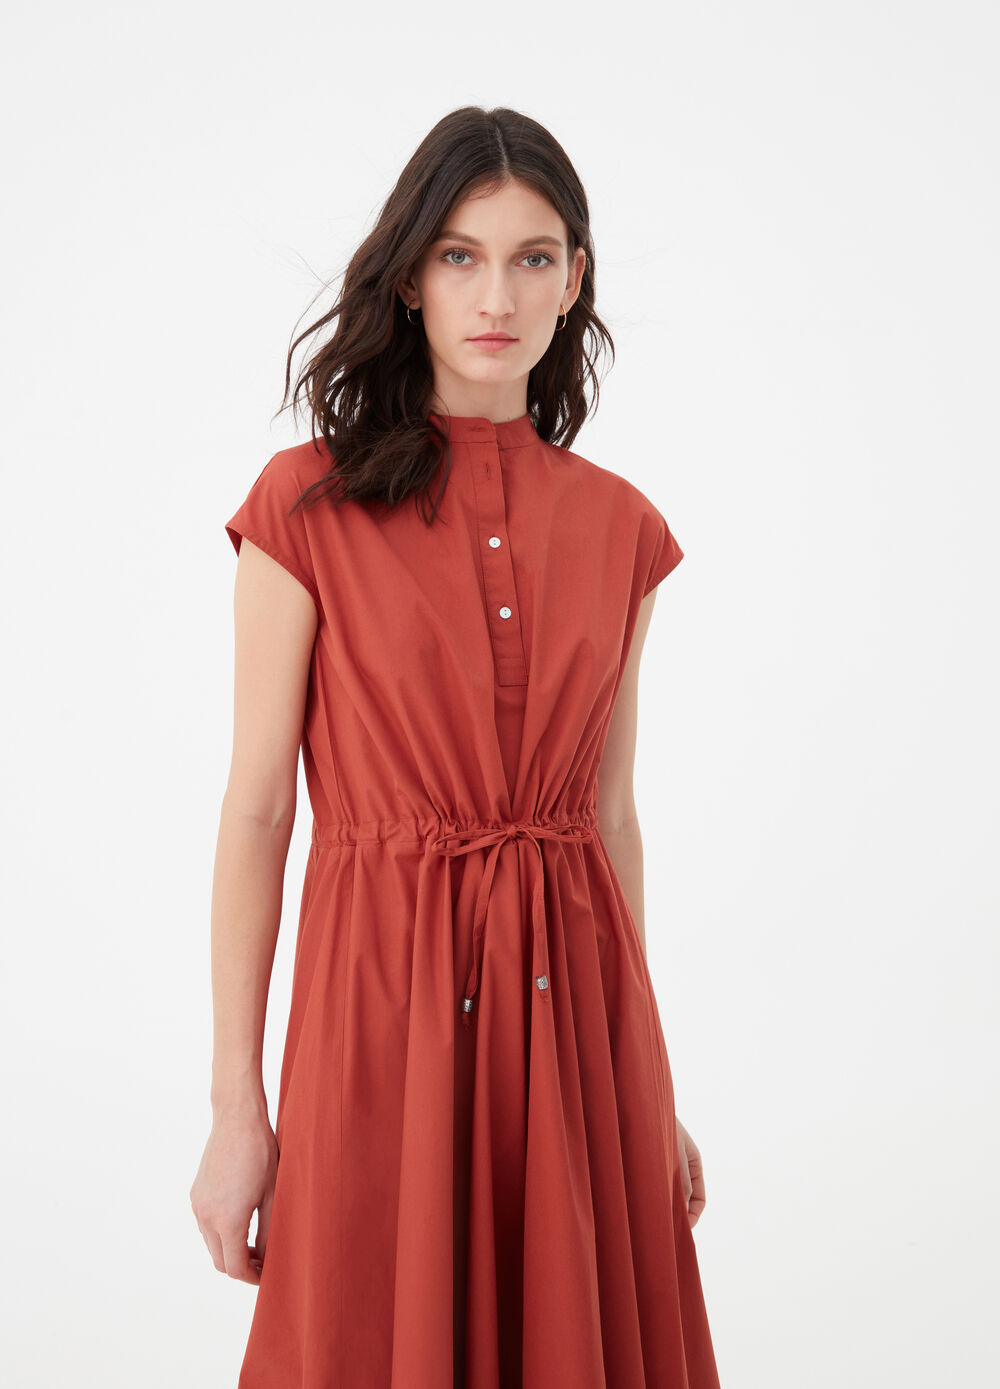 Long dress with pleats, collar and drawstring